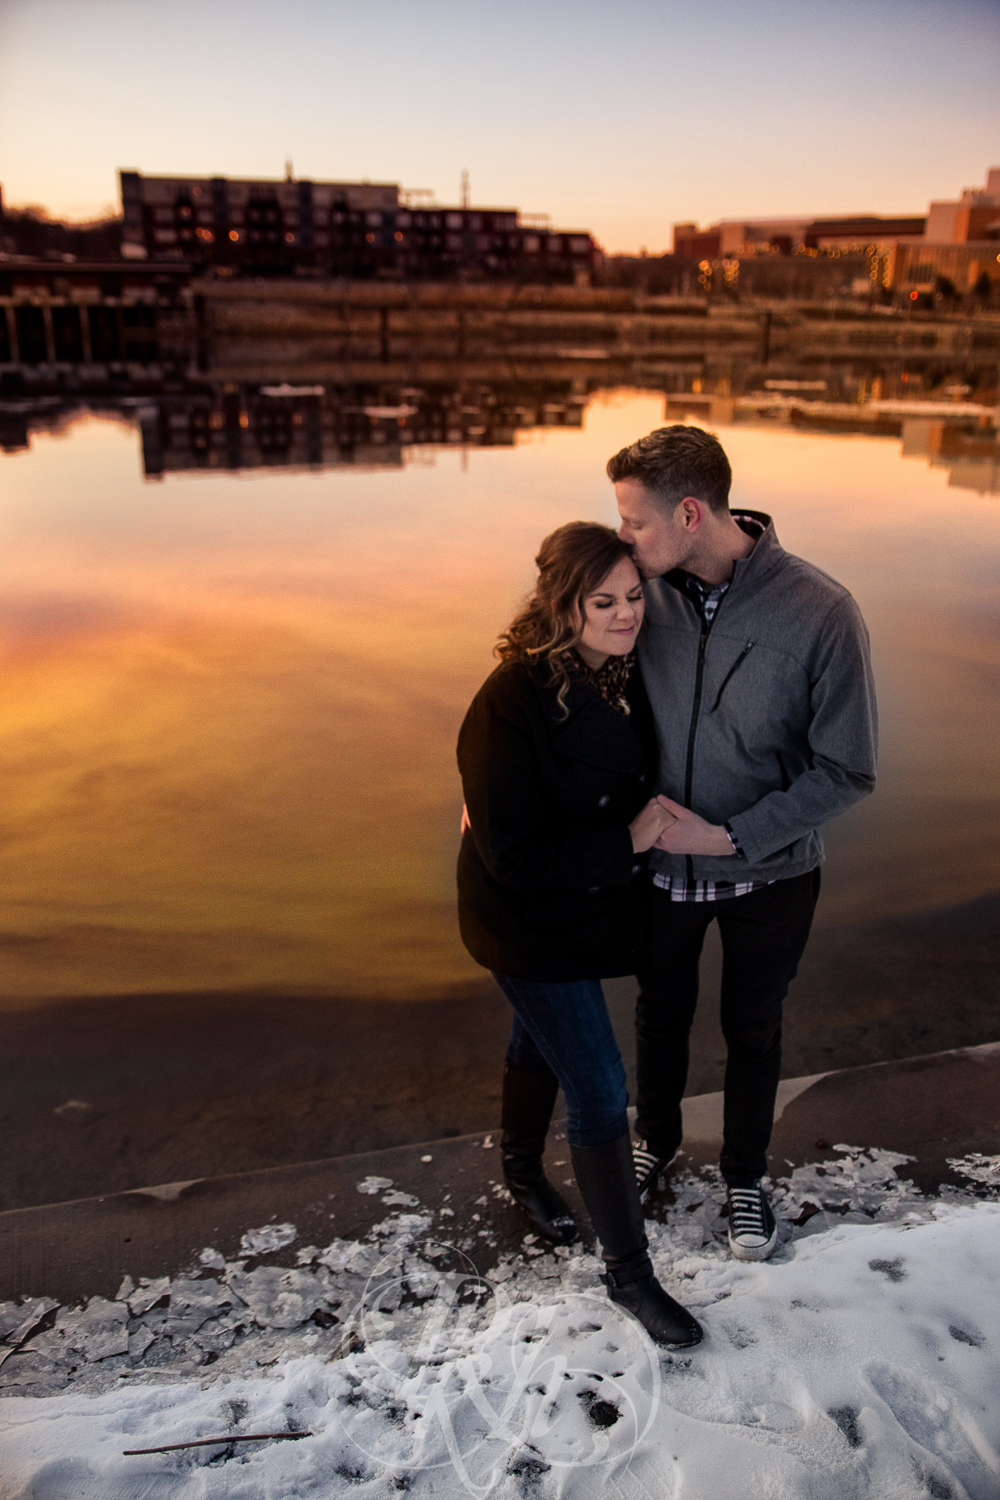 Maddie & Mike - Minnesota Engagement Photography - RKH Images - Blog -7.jpg